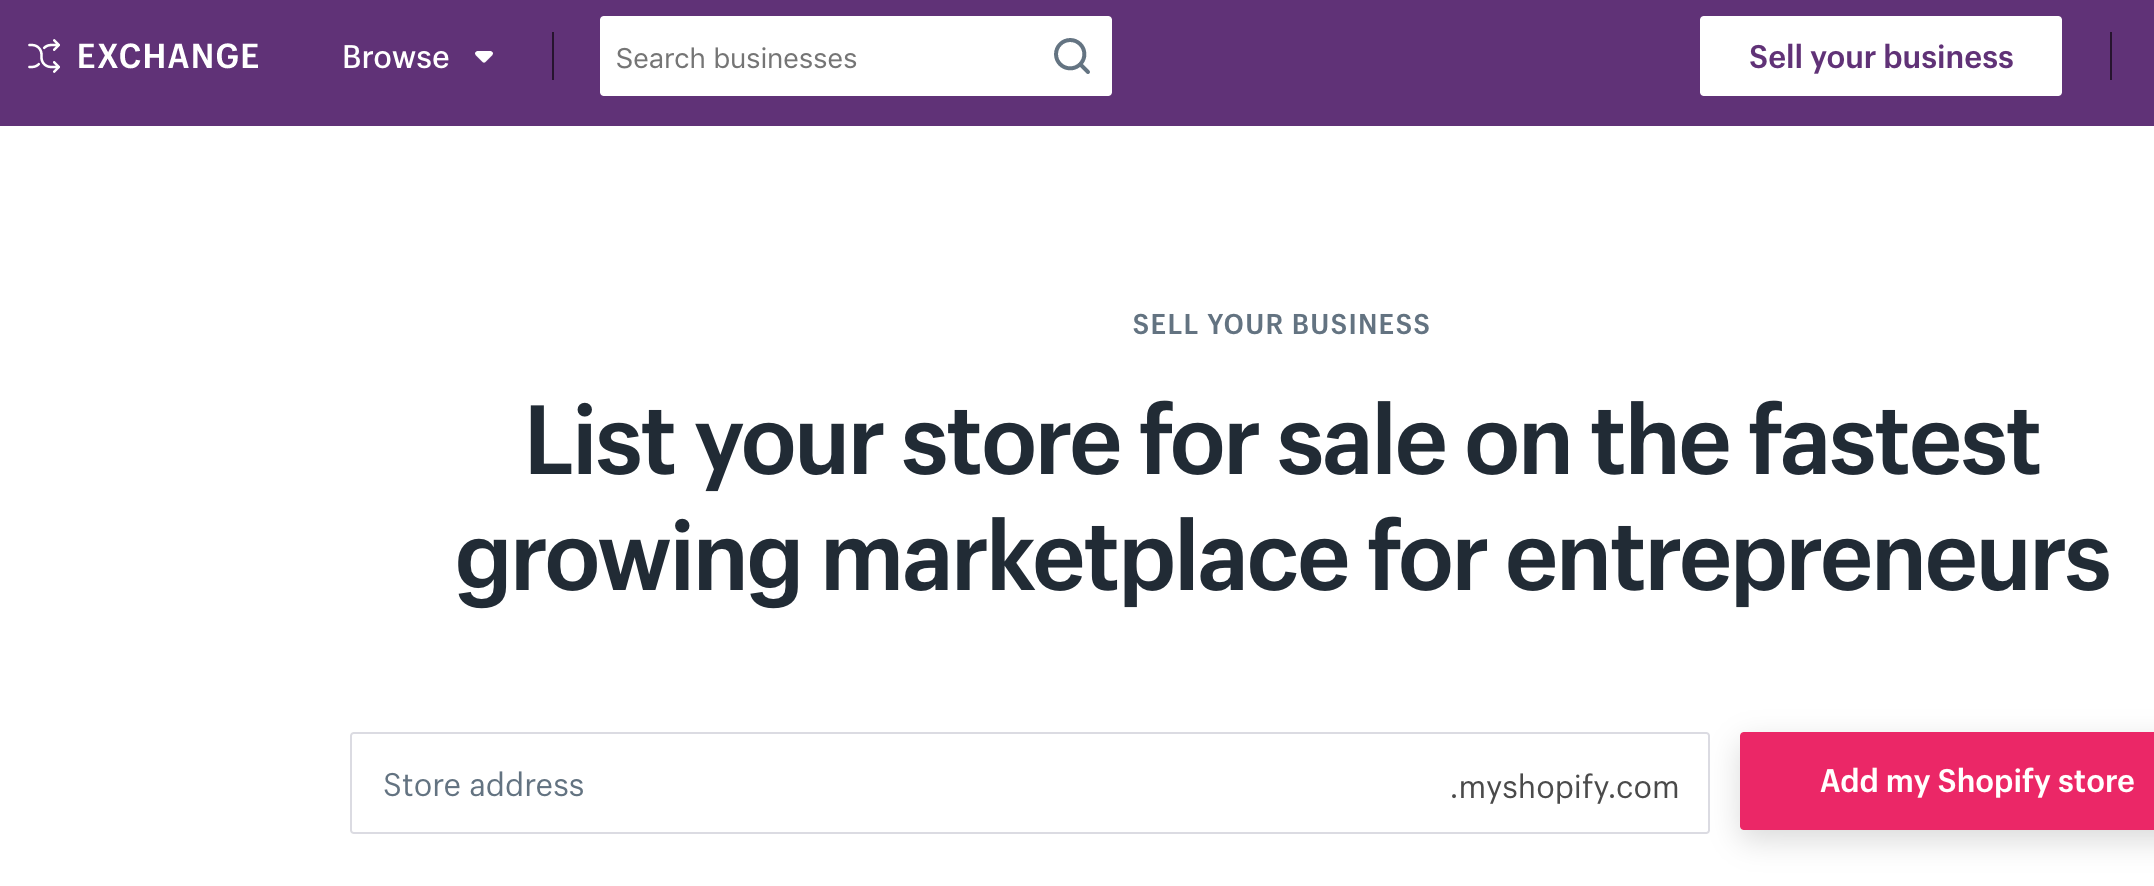 sell your business on exchange